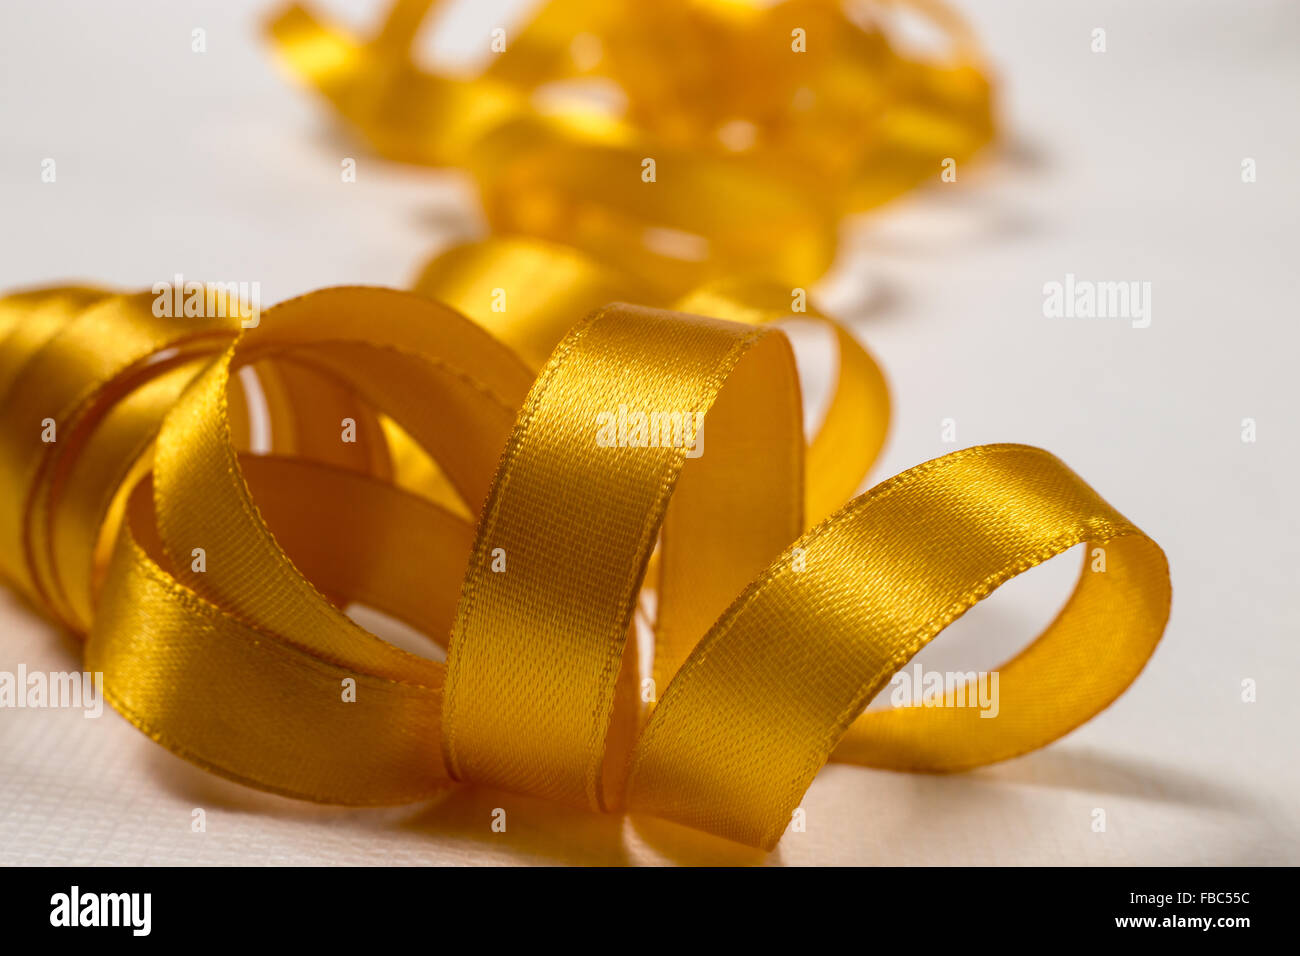 Close-up of golden ribbon unraveling in a mess on white background - Stock Image